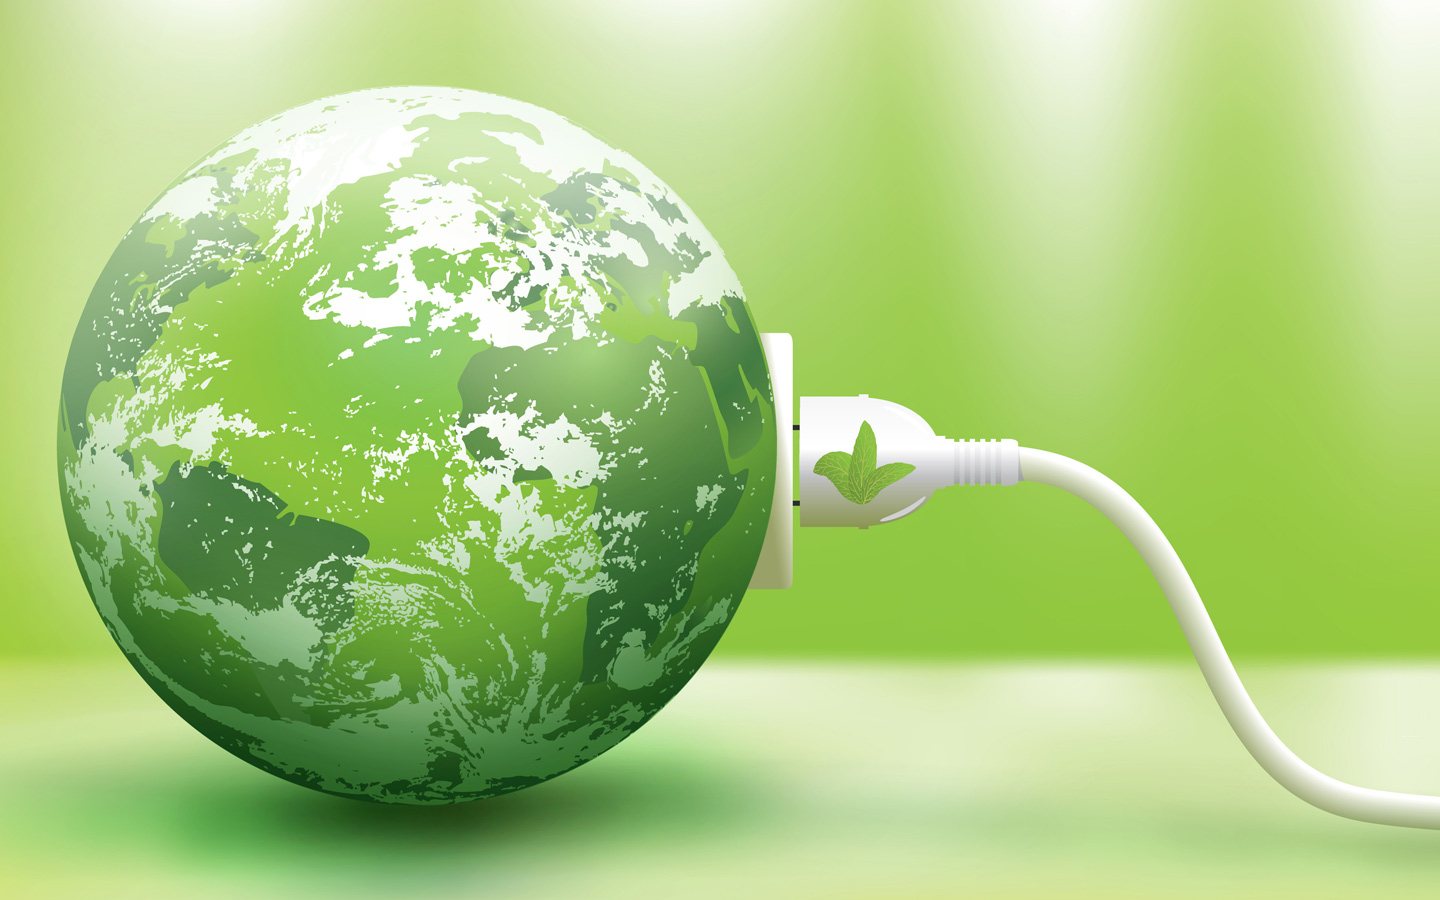 DEWA will be implementing green technology